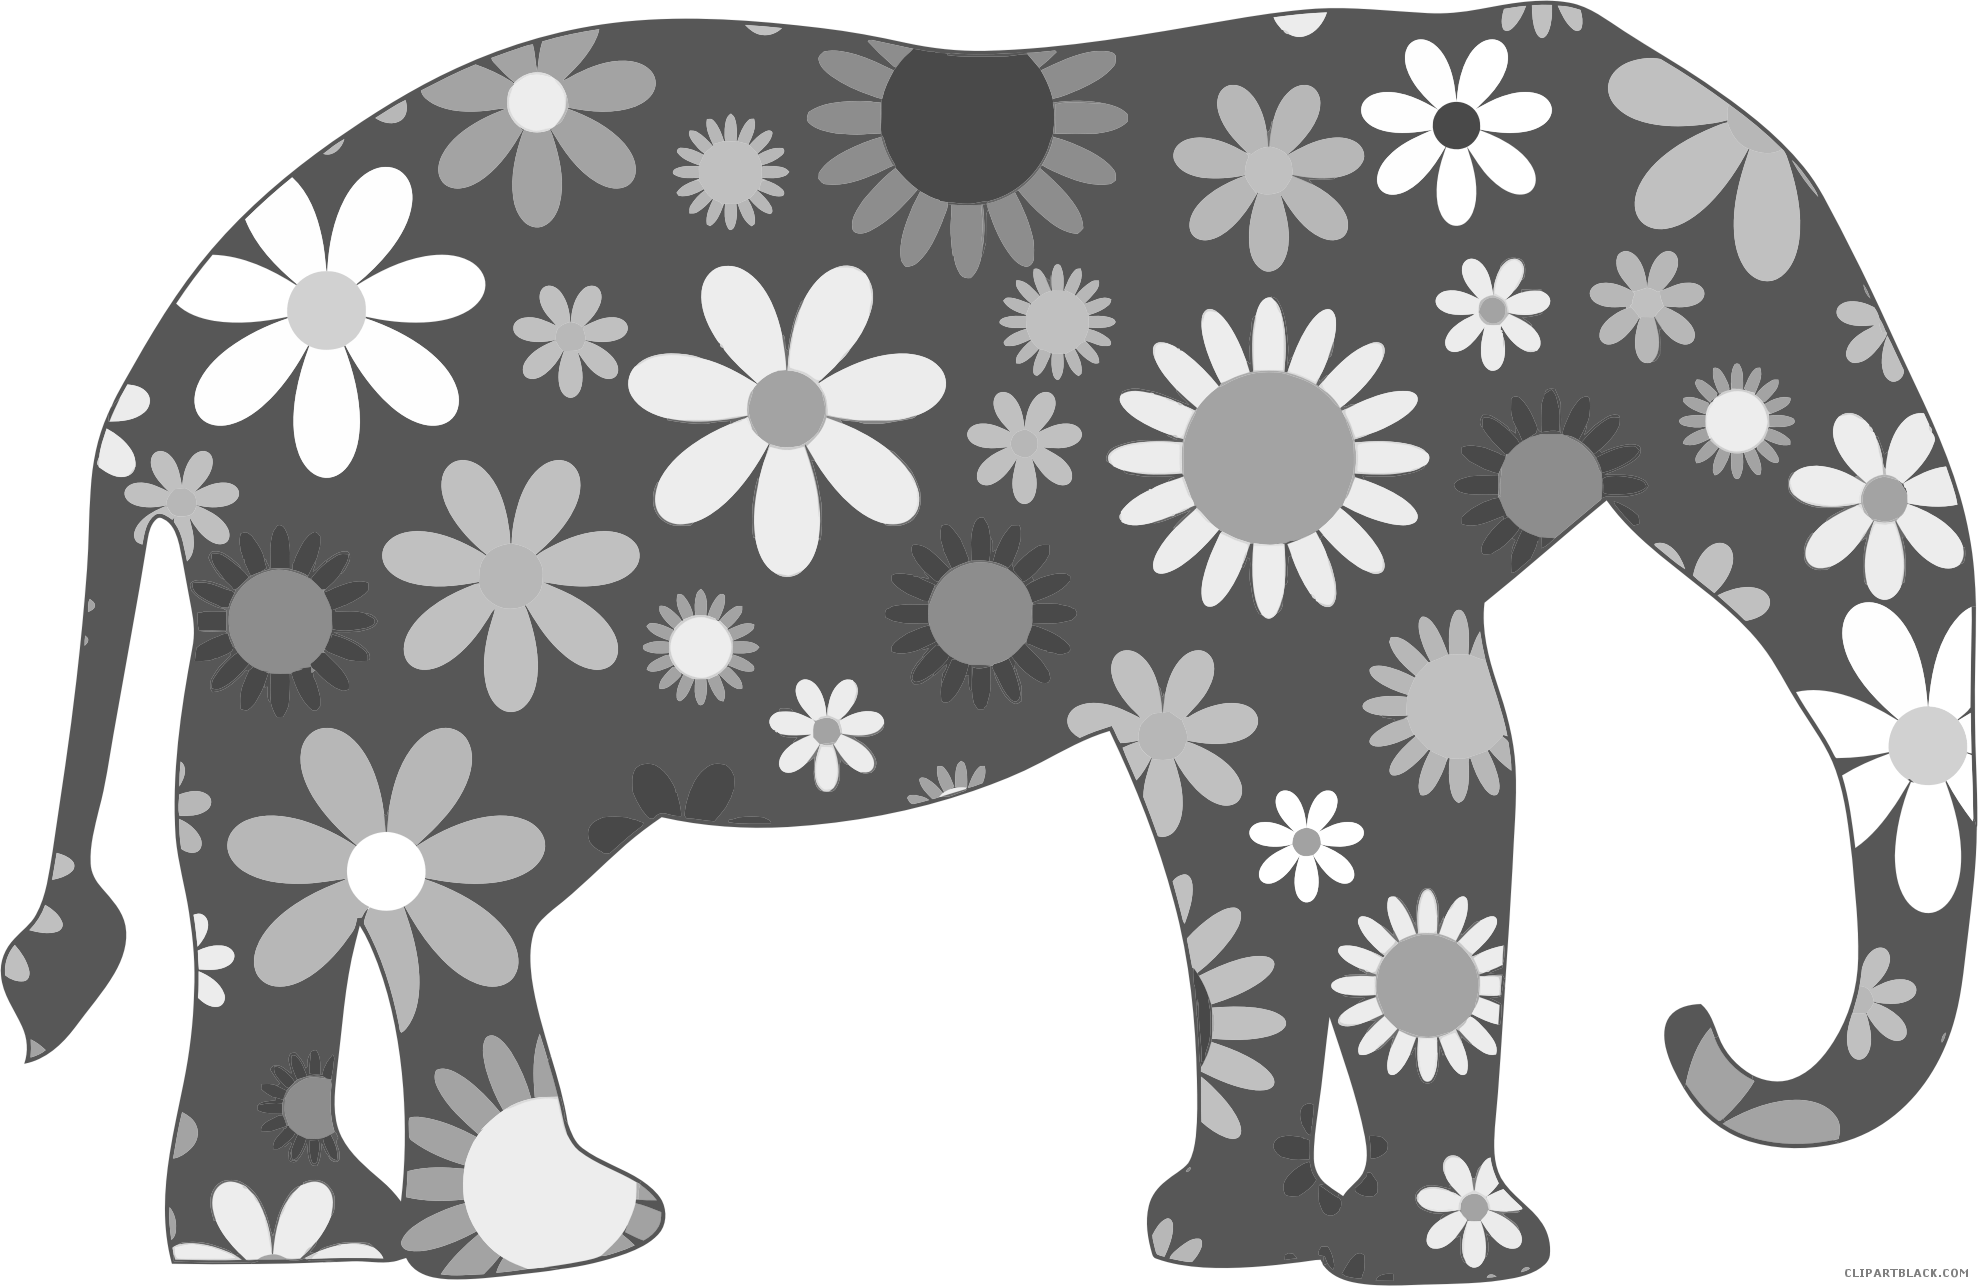 Elephant Clipart Black And White Elephant Black And White Transparent Free For Download On Webstockreview 2020 To view the full png size resolution click on any of the below. elephant clipart black and white